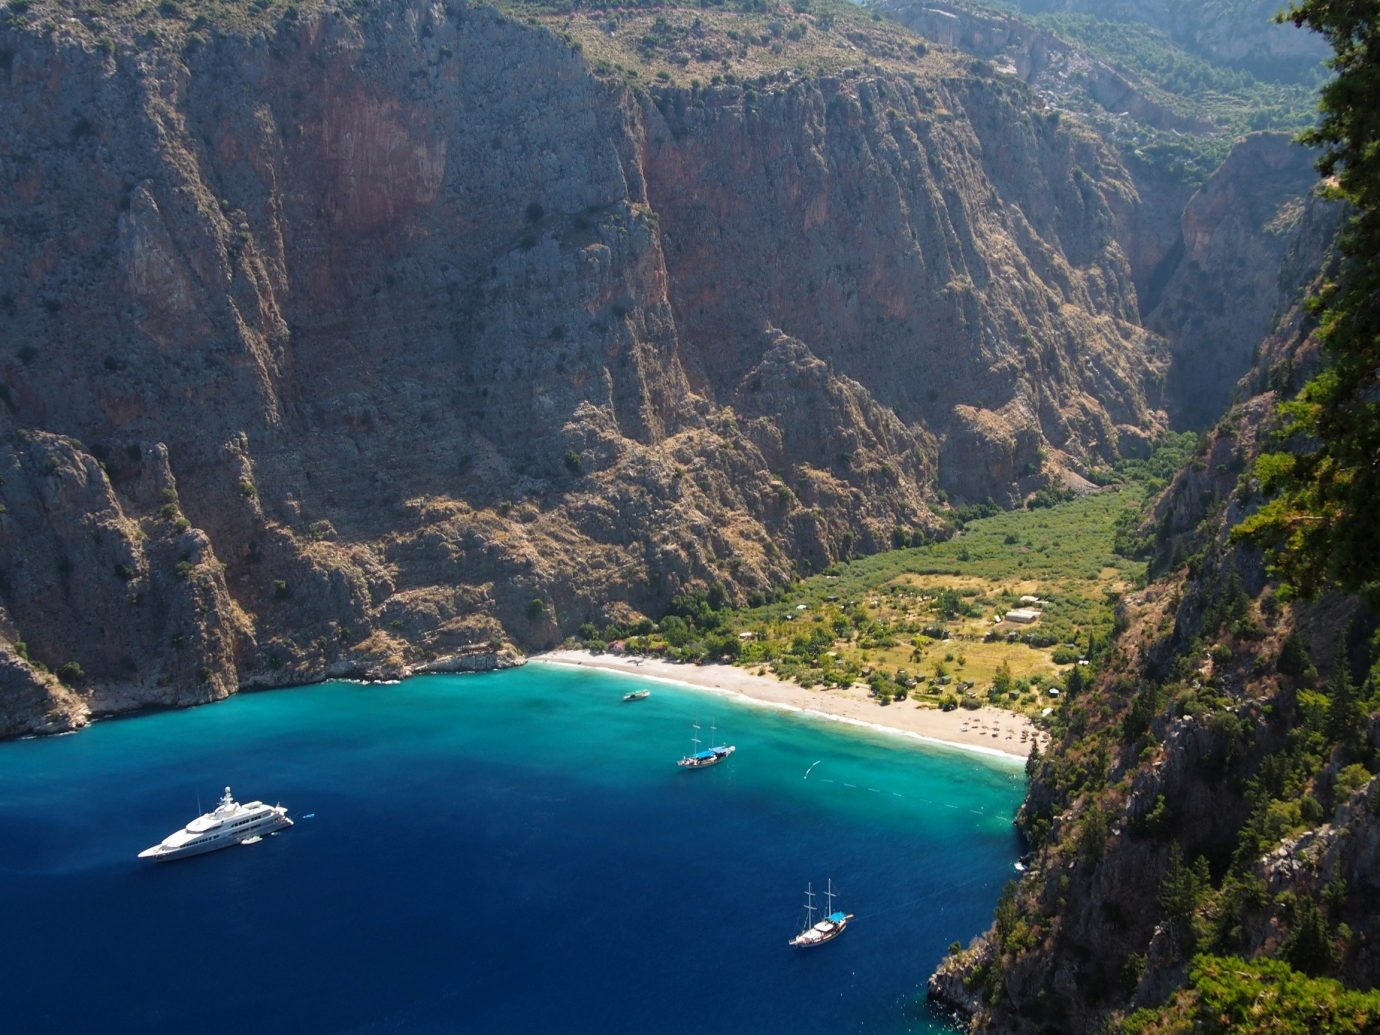 Beach Secret Getaways mountain Nature outdoor valley landform geographical feature canyon body of water fjord Lake Coast mountain range Sea bay cliff terrain crater lake reservoir hillside surrounded